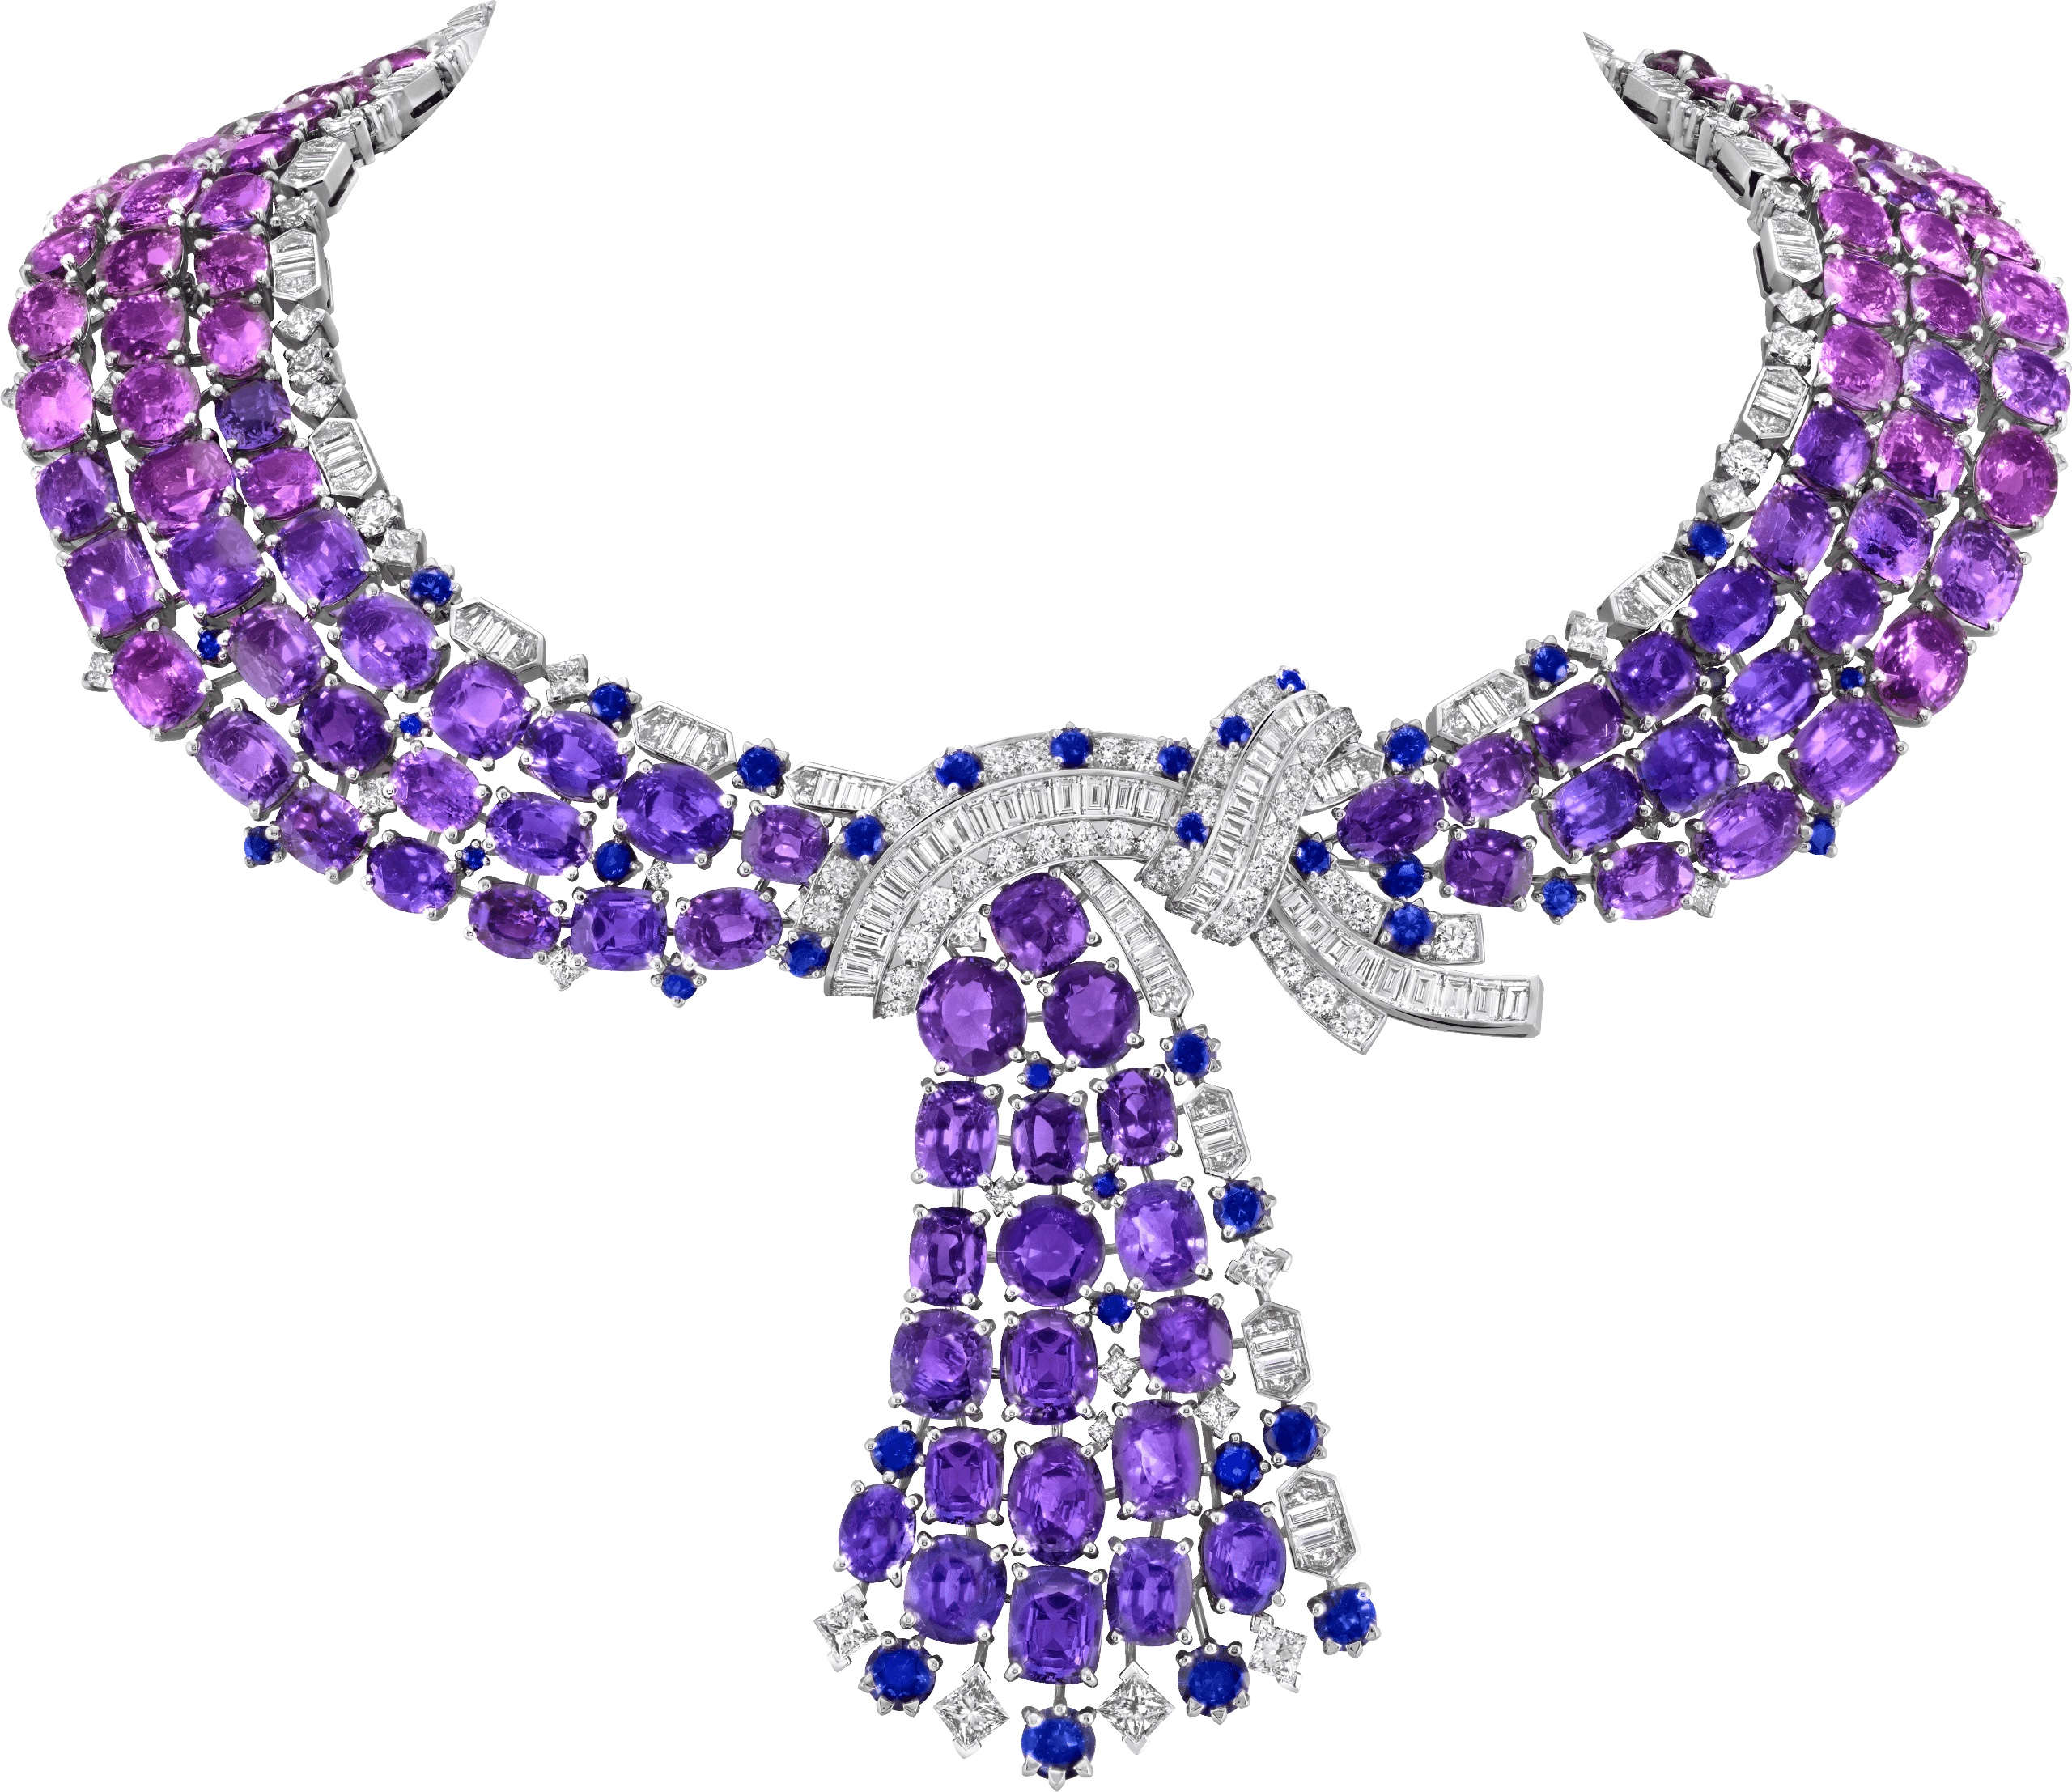 Antennae reversible necklace. White gold, 154 cushion-cut and oval-cut pink and mauve sapphires for 417.33 carats (Madagascar), sapphires, rubies, diamonds.